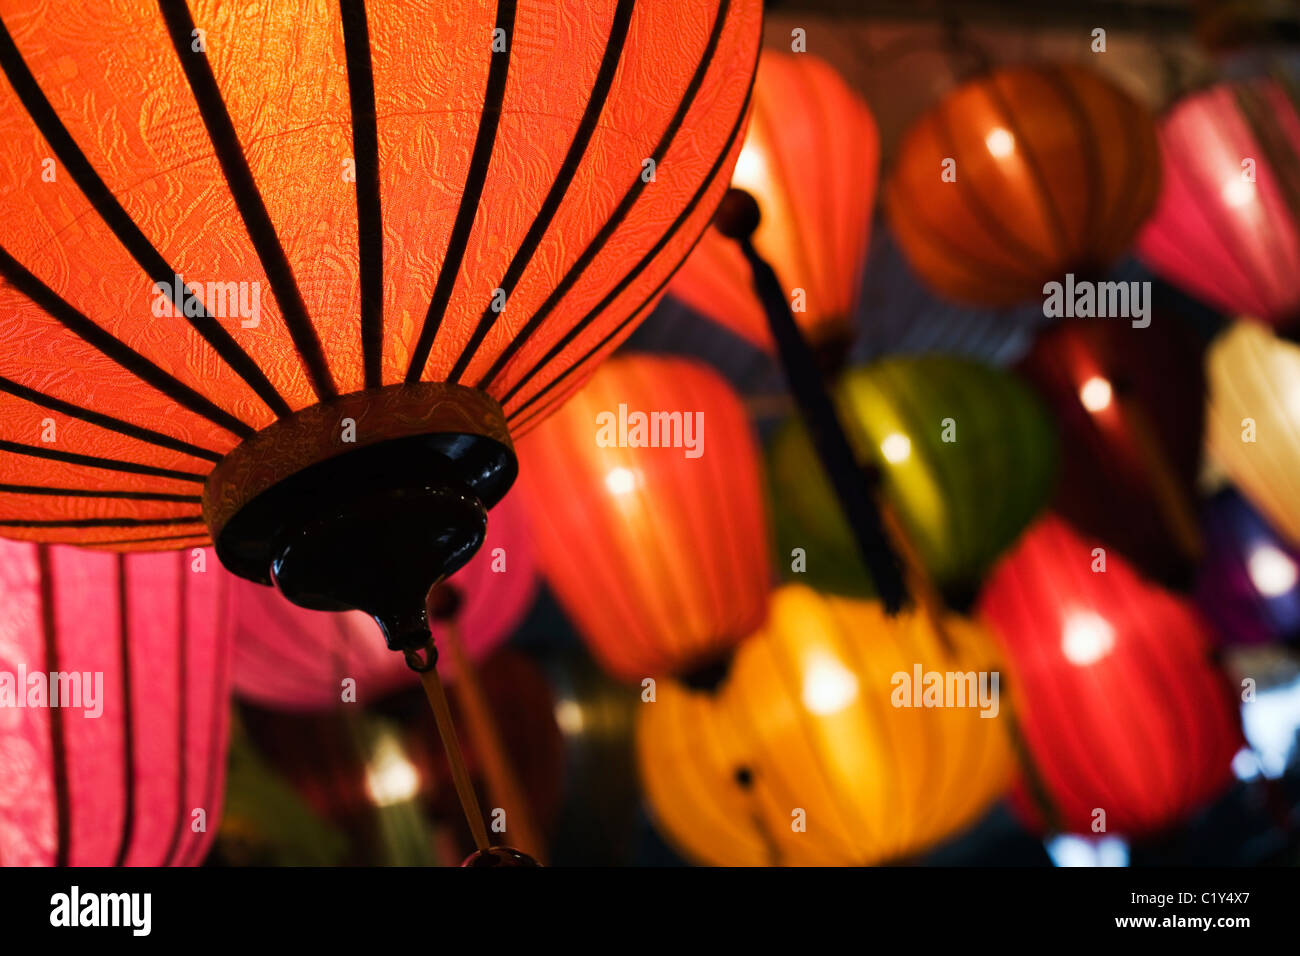 Colourful lanterns at the Chatuchak Weekend Market. Bangkok, Thailand - Stock Image